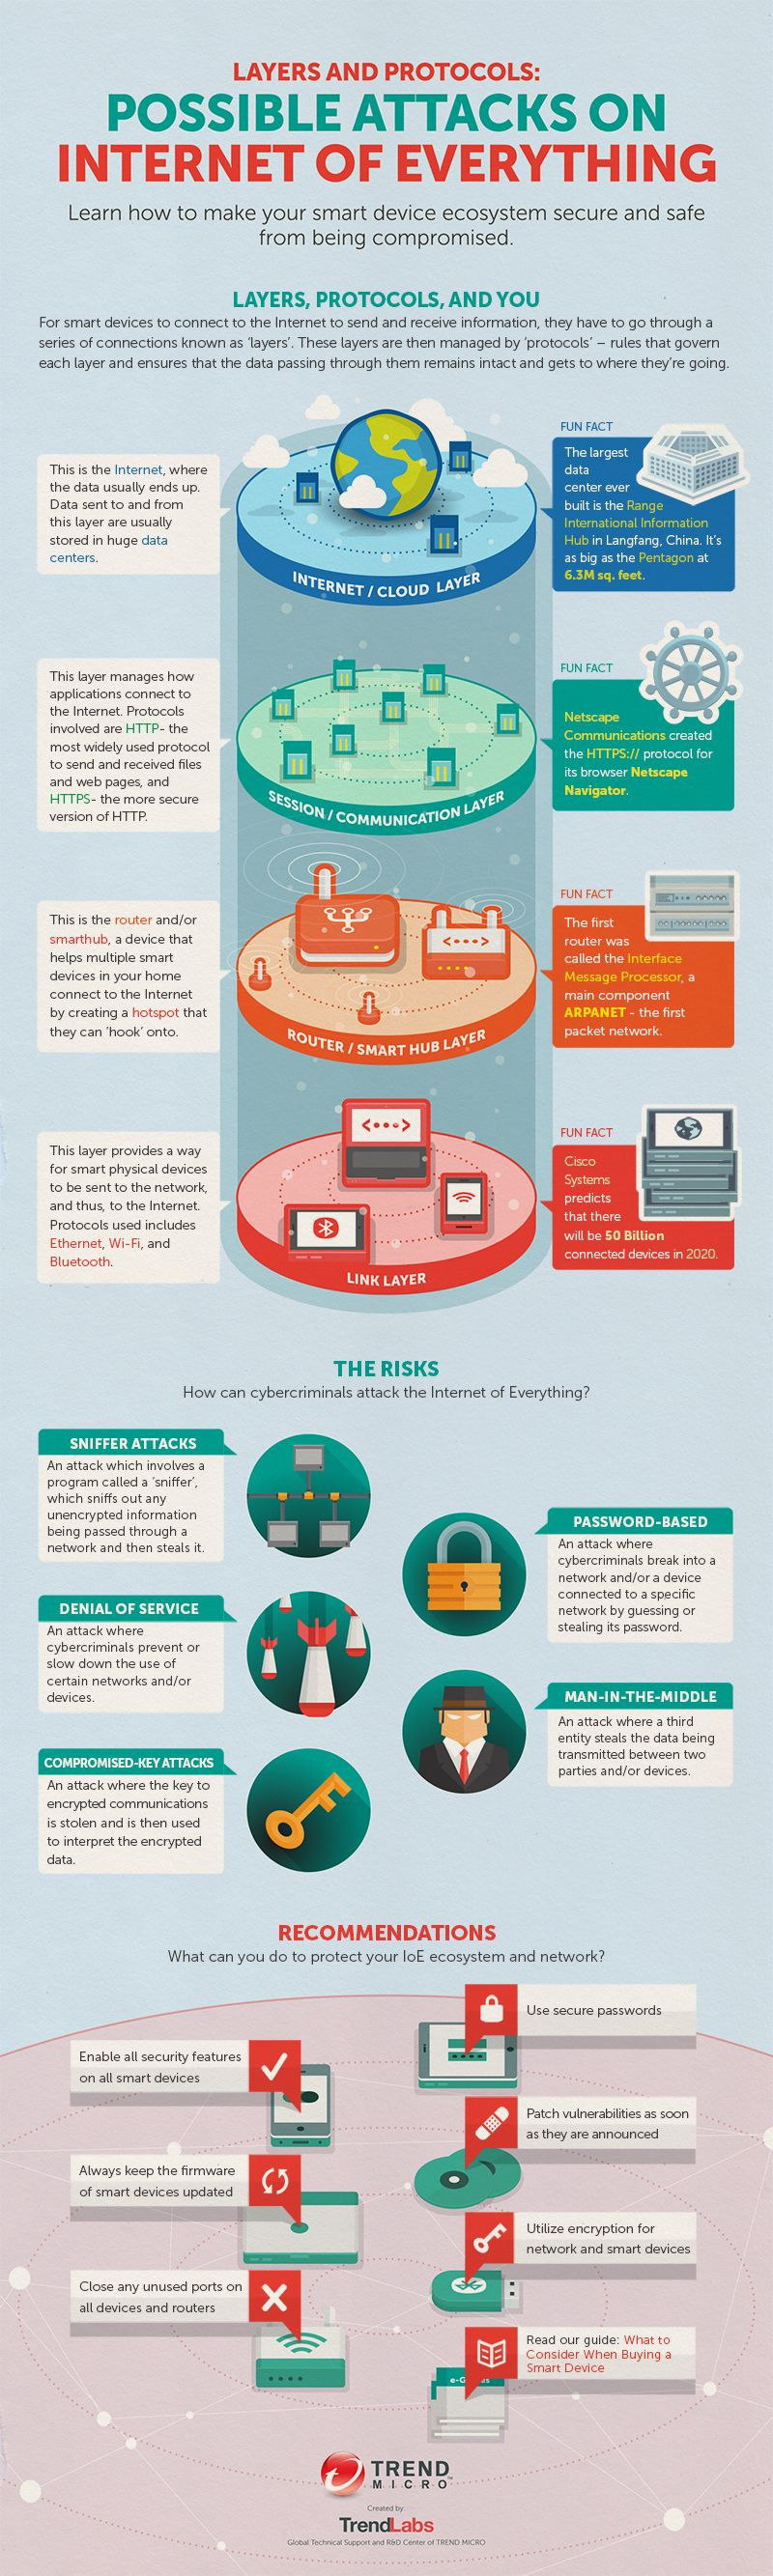 Layers and Protocols: Possible Attacks on The Internet of Everything #infographic